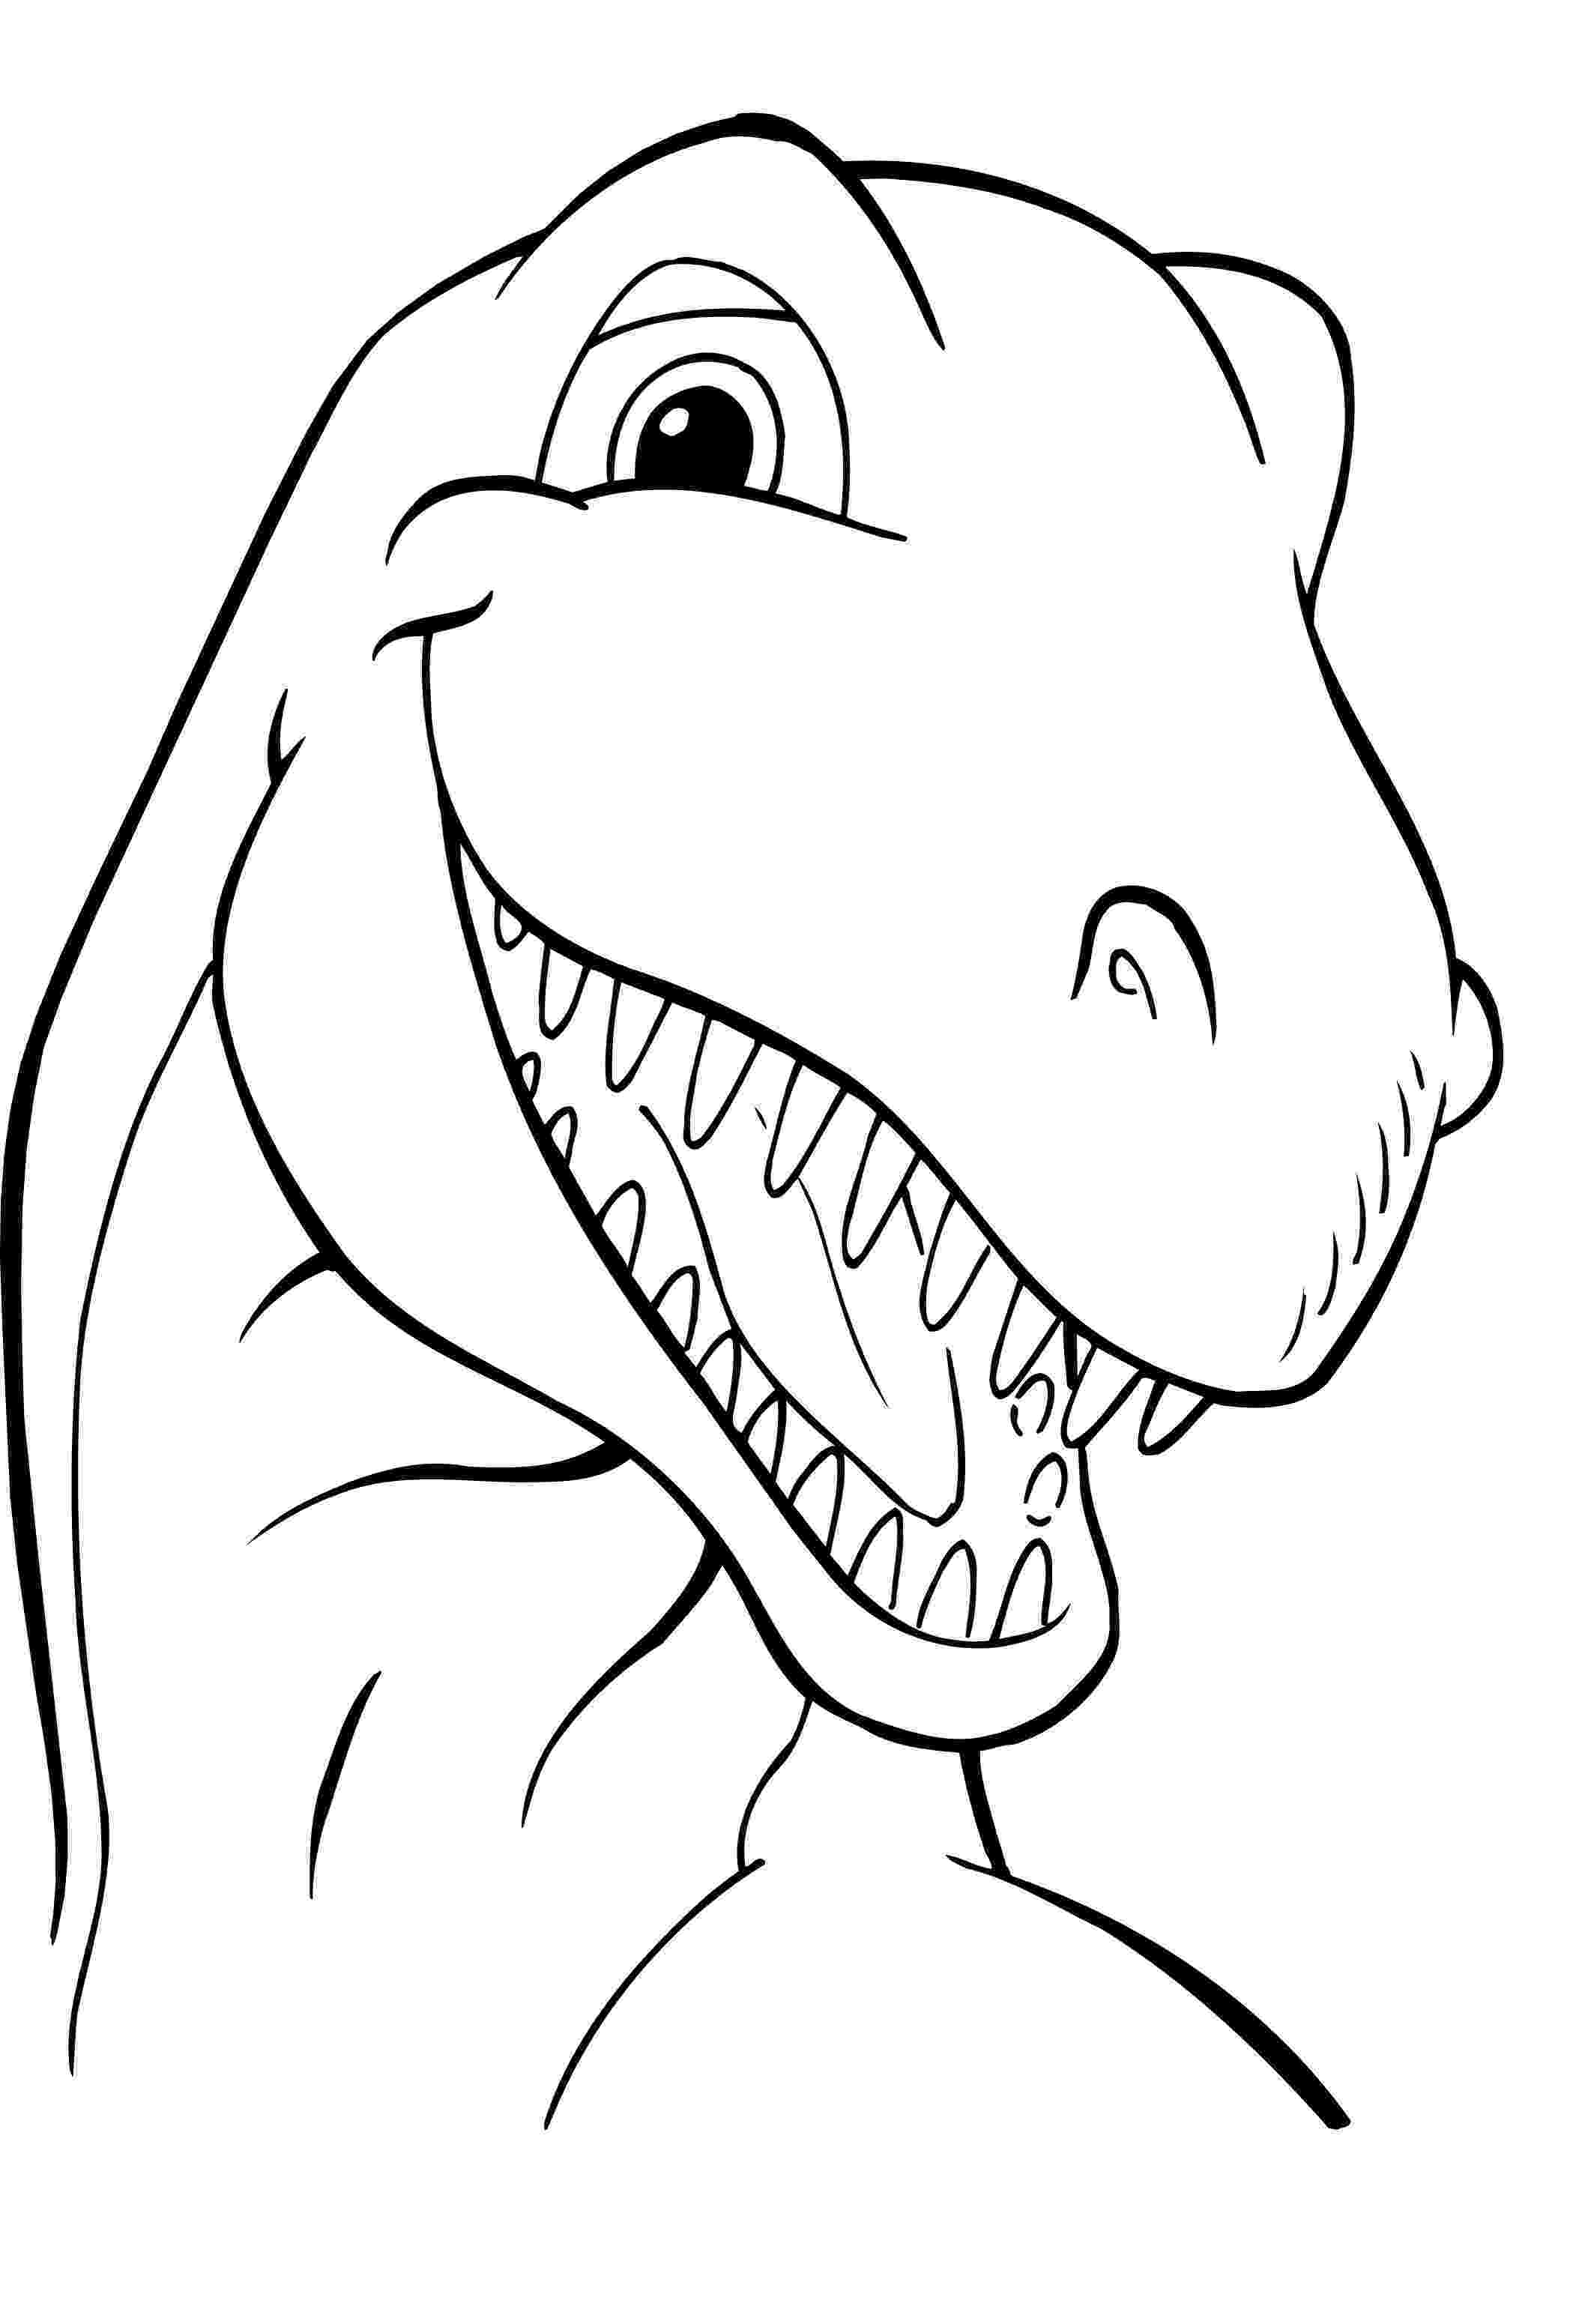 free printable dinosaur pictures extinct animals 36 printable dinosaur coloring pages pictures free printable dinosaur